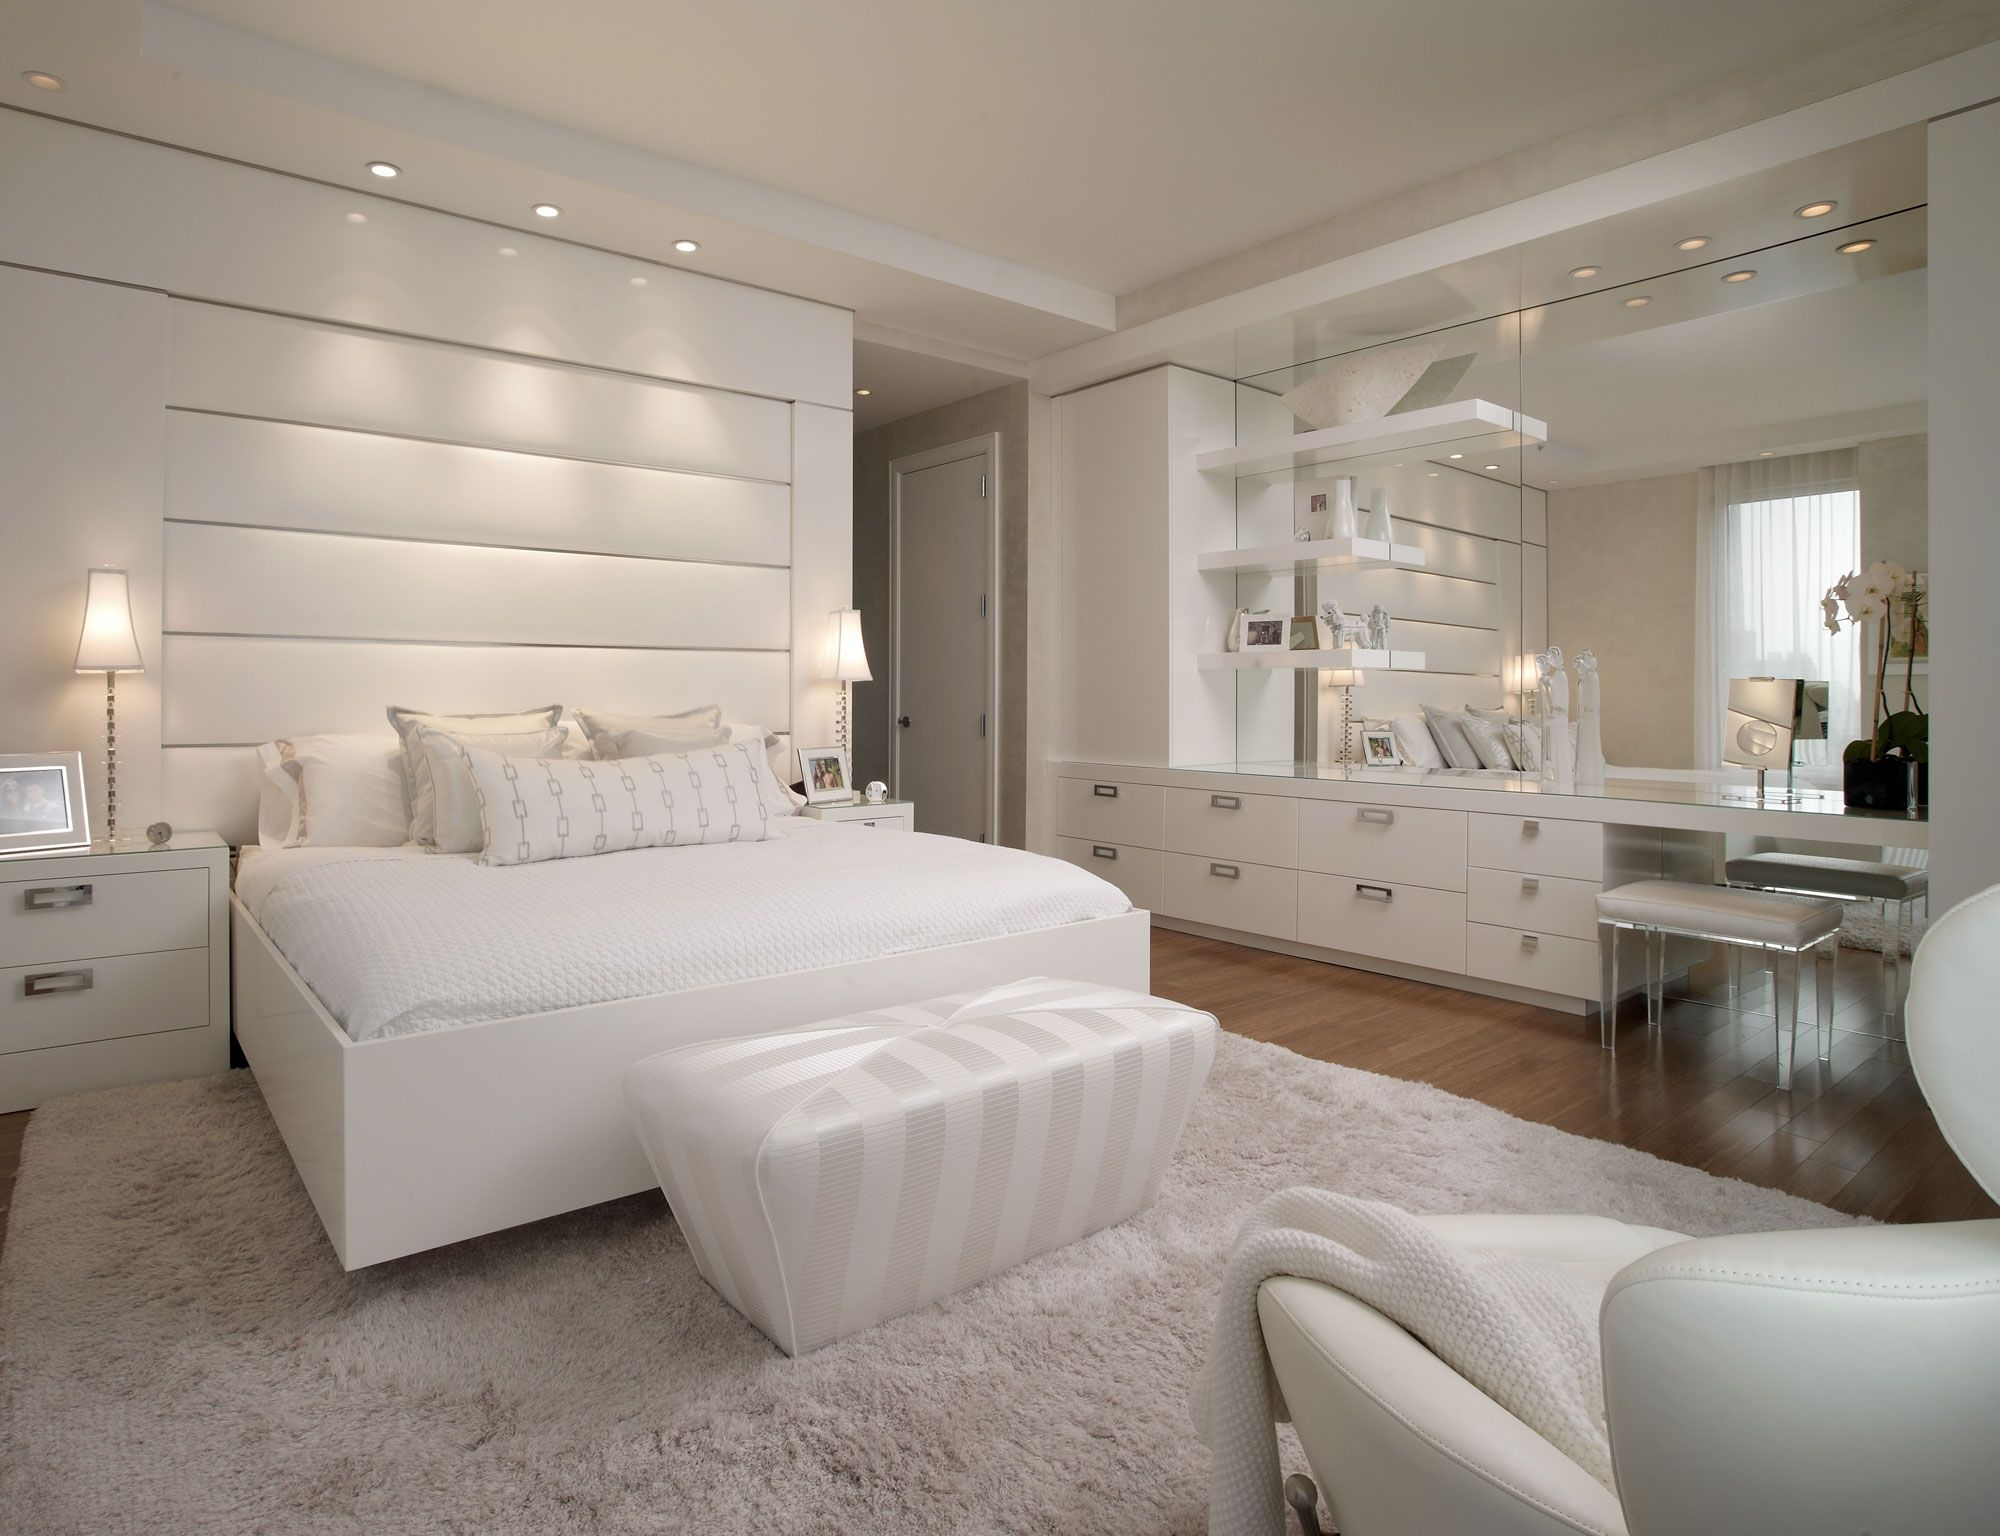 Luxury All White Bedroom Decorating Ideas Amazing Glamorous Bedroom Look Luxury White Scheme Ideas